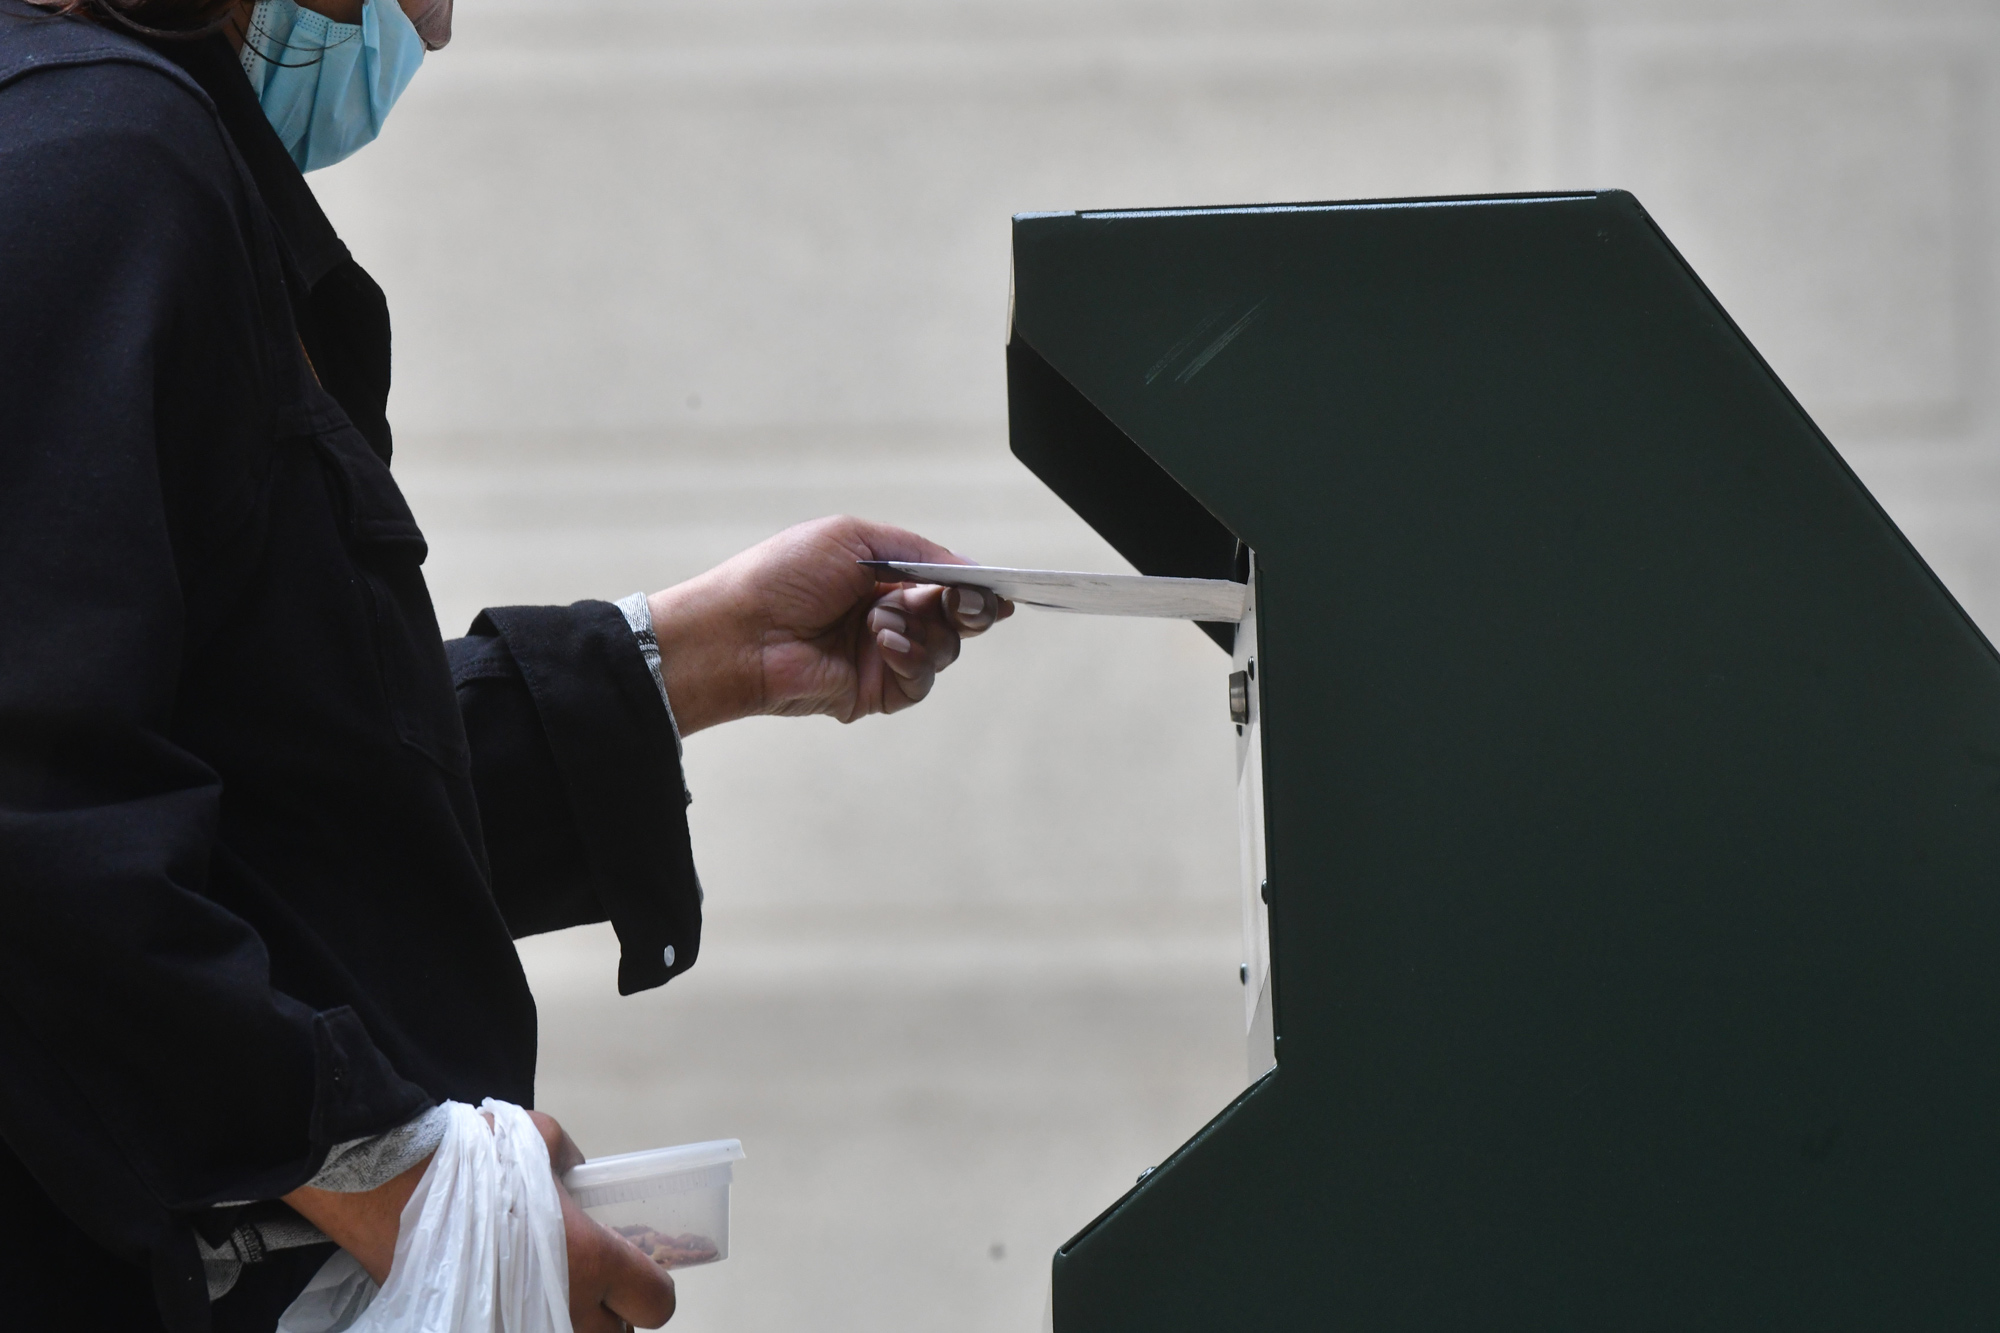 A woman deposits her ballot in an official ballot drop box at the satellite polling station outside Philadelphia City Hall on October 27 in Philadelphia.